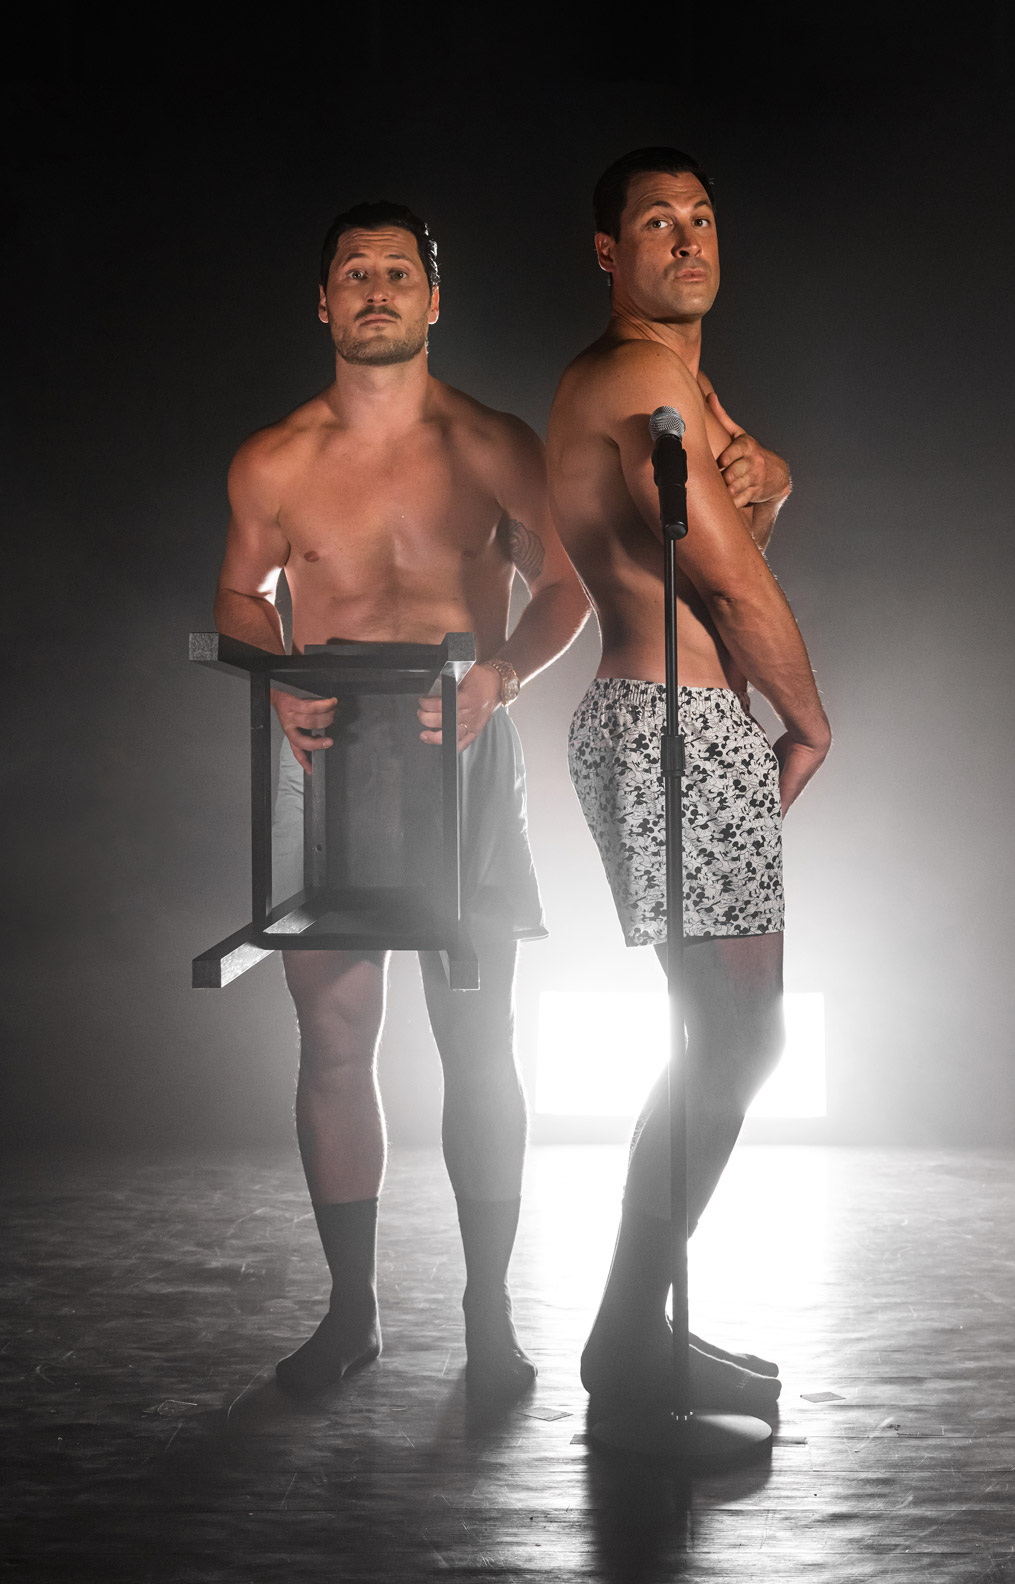 maks & val stripped down tour in boxers